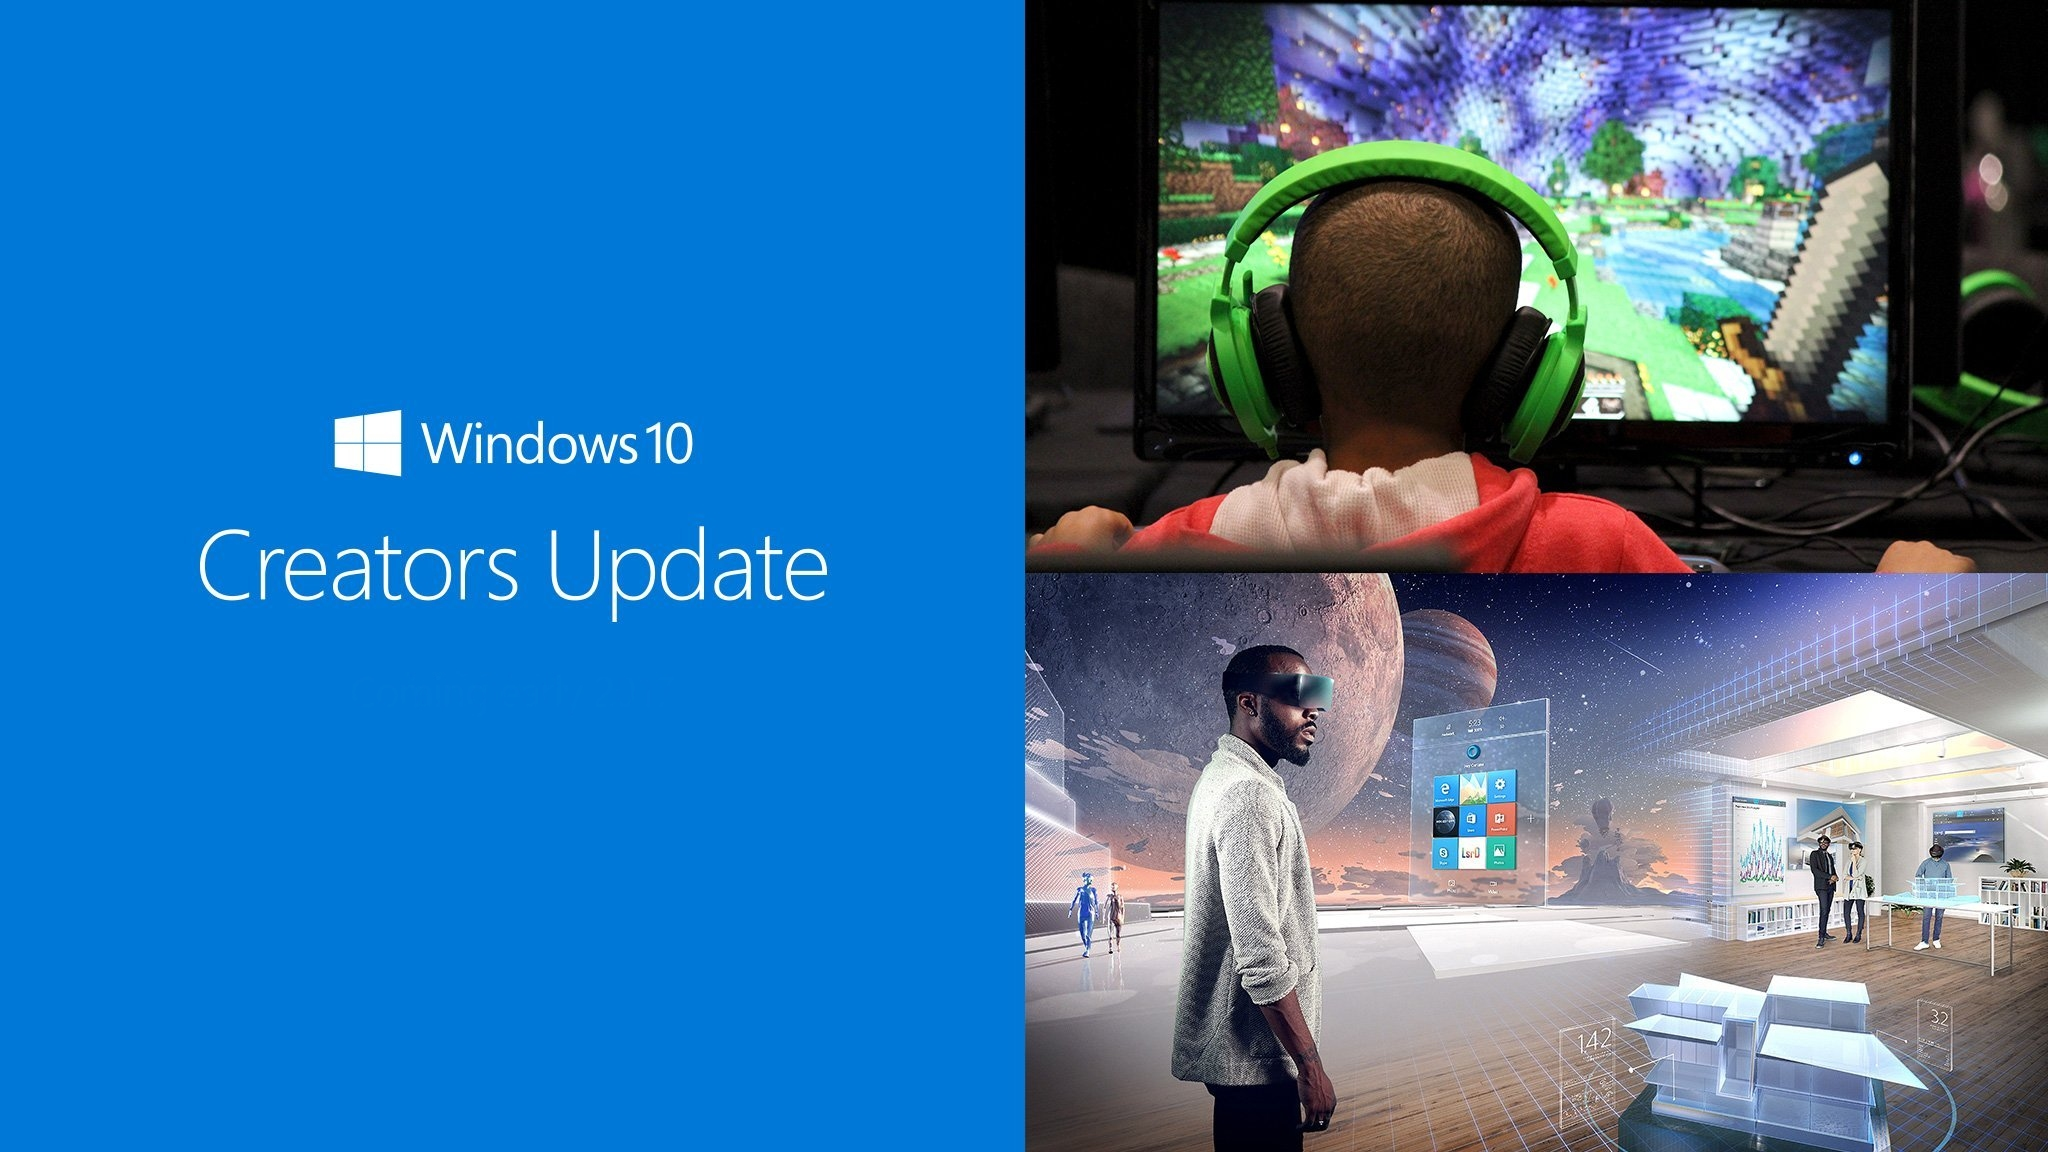 operating system, windows update, windows 10, creators update